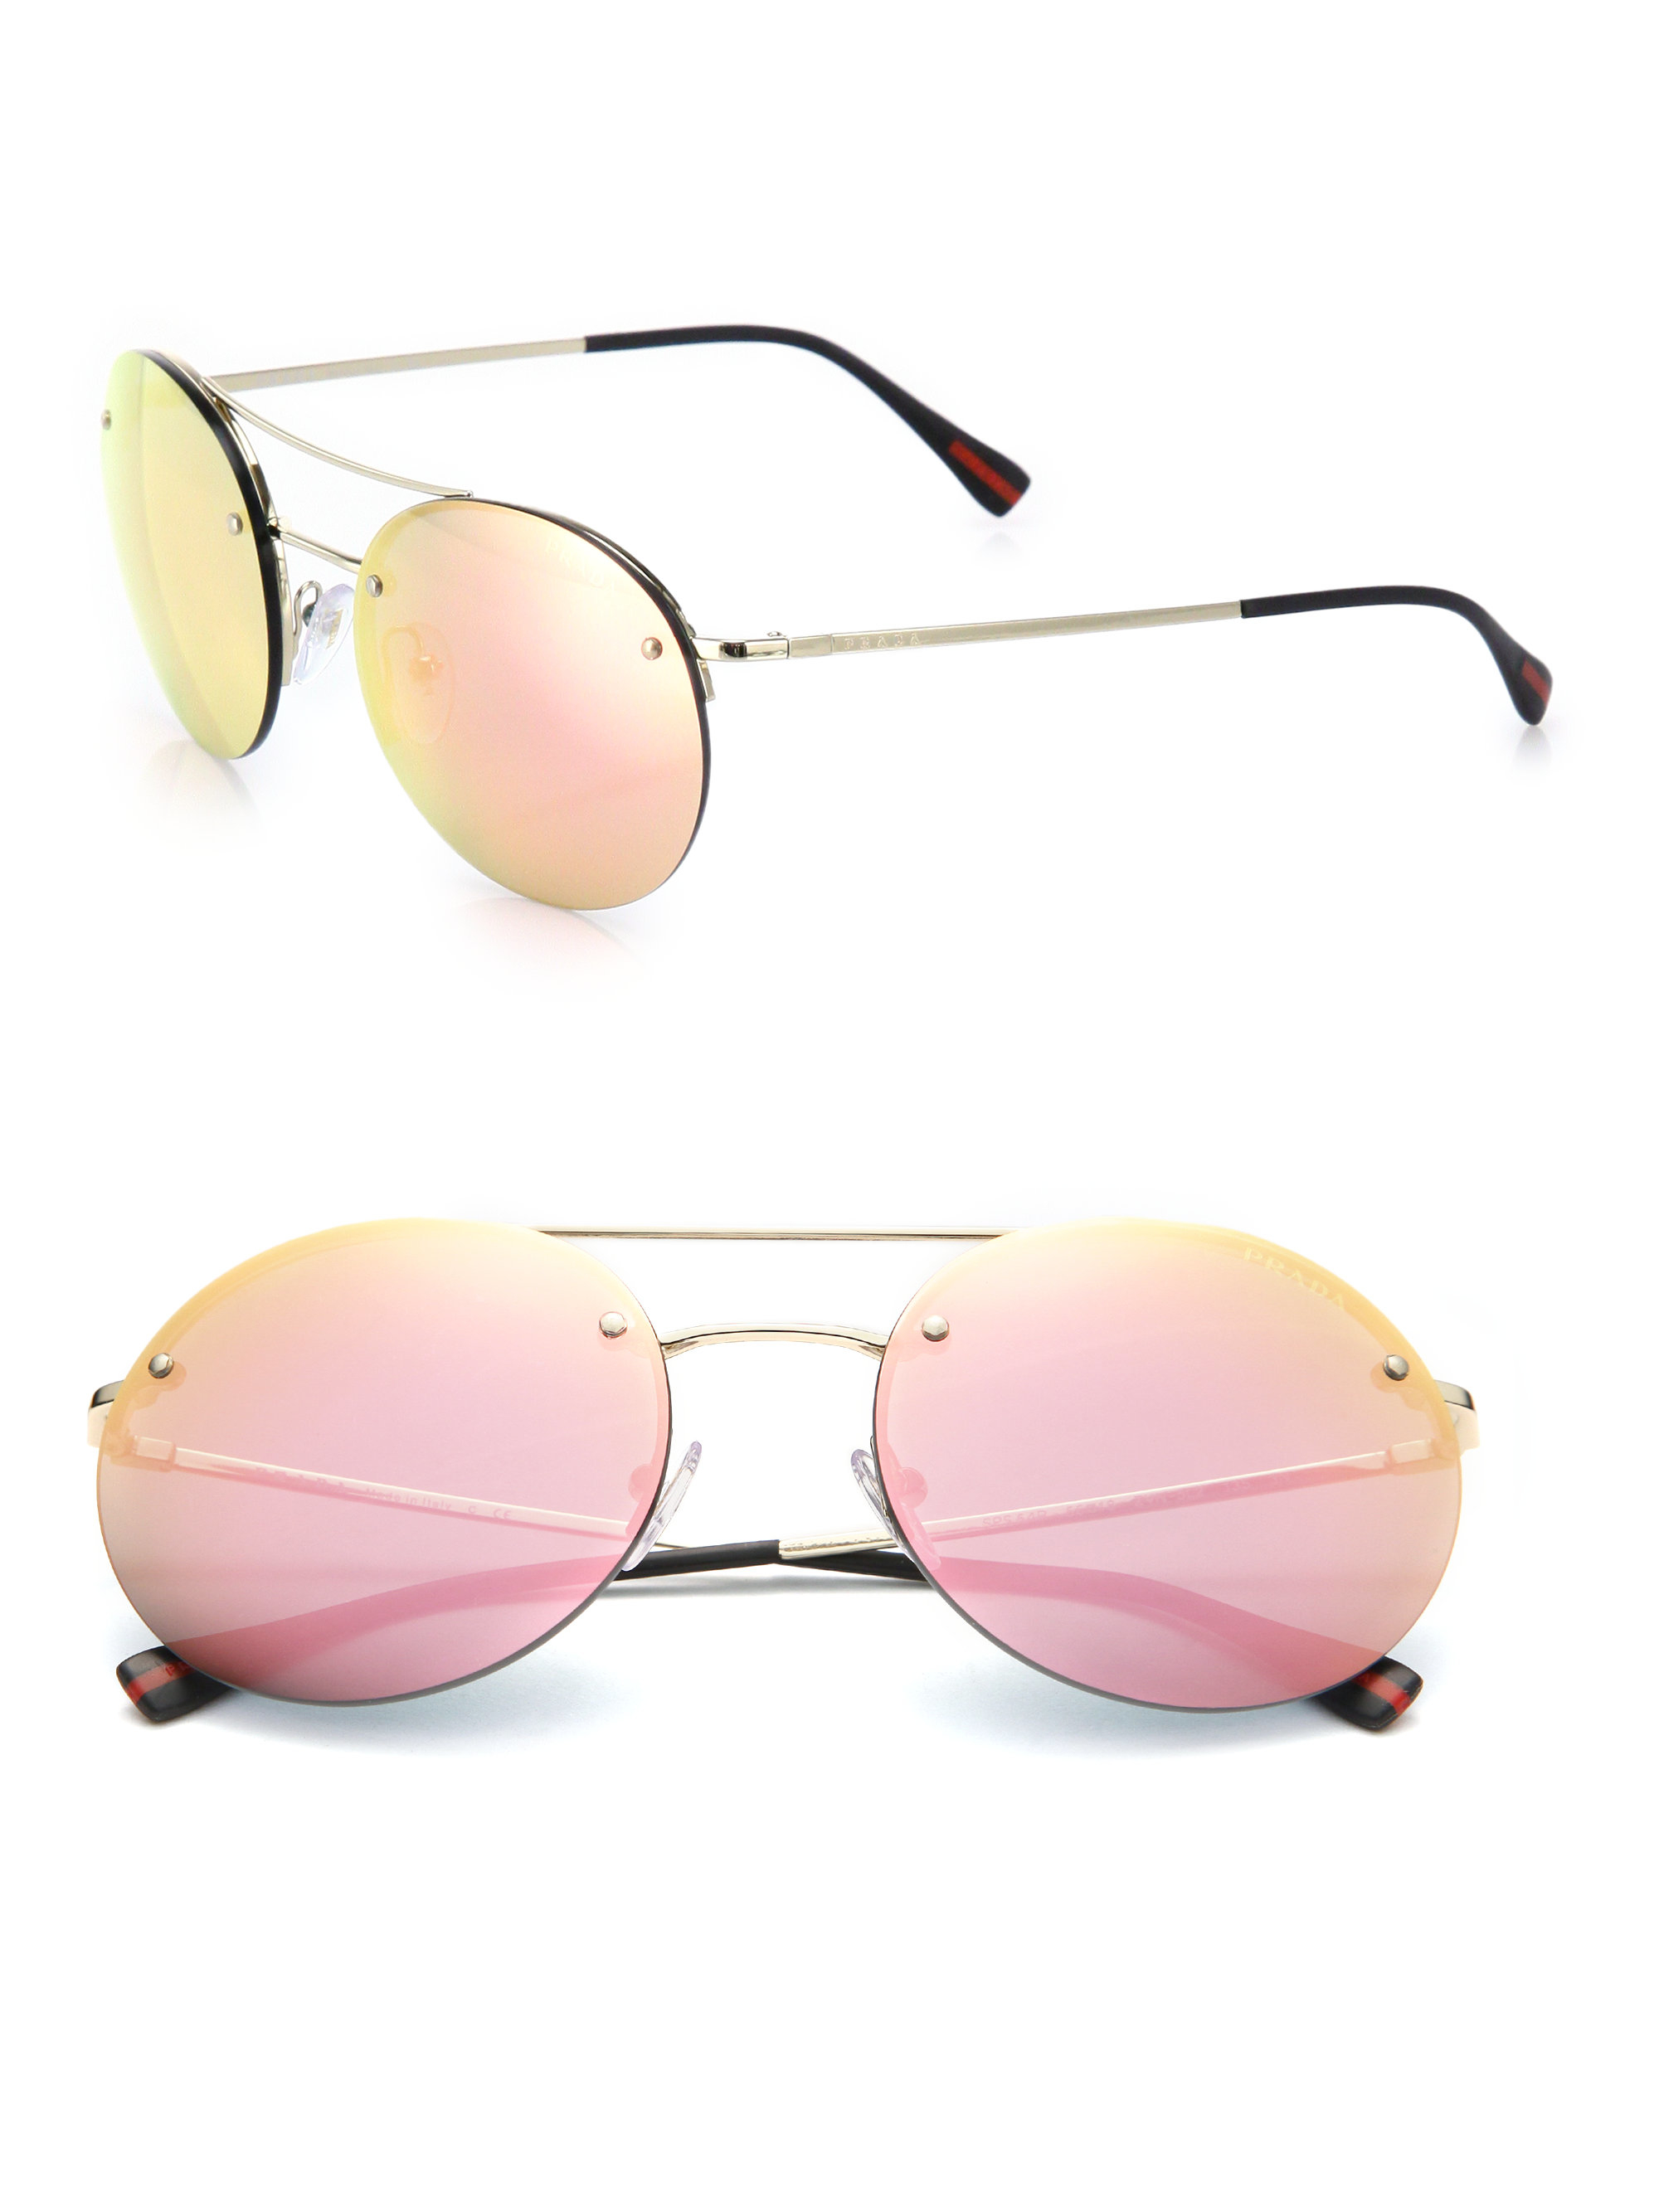 d462af18b0 ... promo code for lyst prada 56mm round metal sunglasses in pink for men  a3b26 e0e69